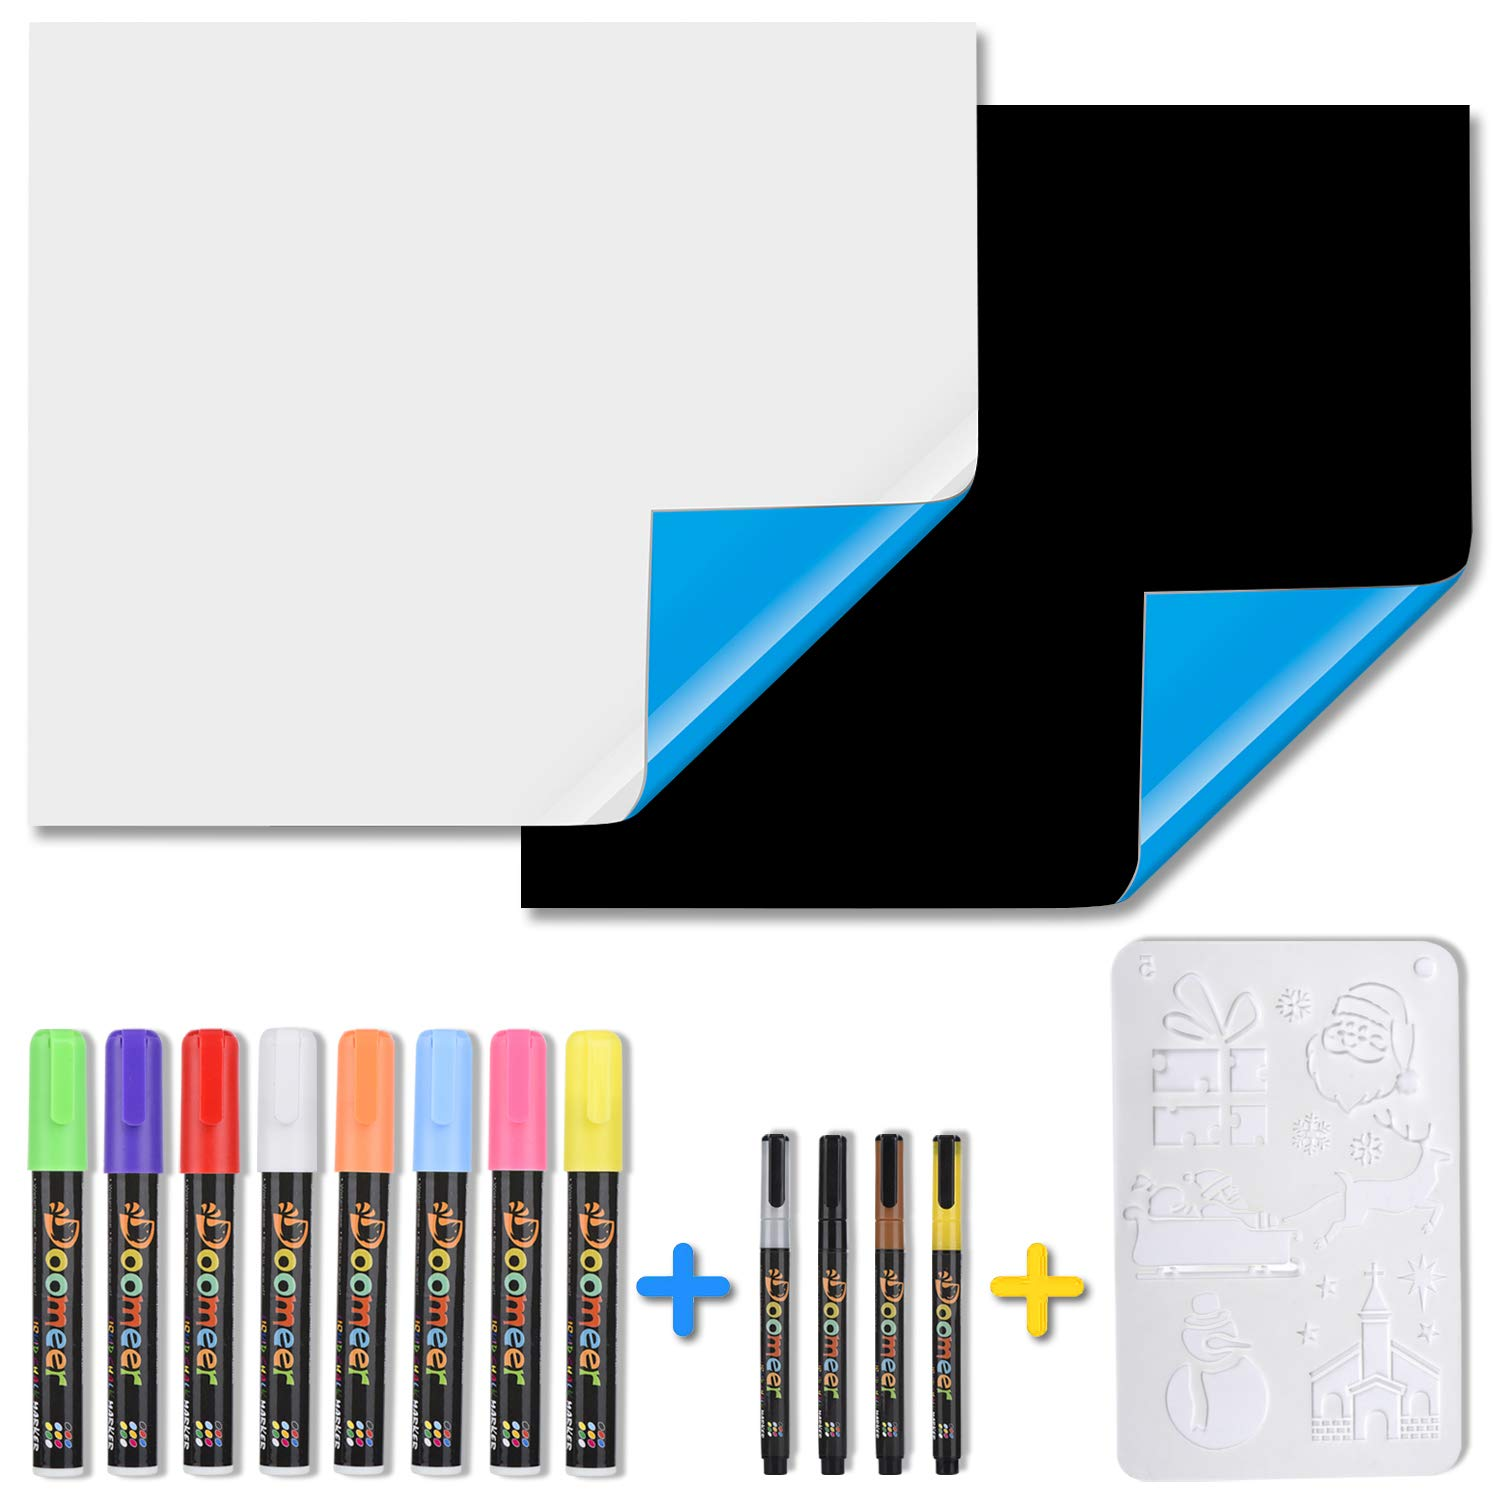 "Magnetic Whiteboard Blackboard for Refrigerator, Self-adhesive for Smooth Surface, 17.7""x 19.7"" White Board Black Board 12 Colors Liquid Chalk Markers Drawing Template Surprise Set"